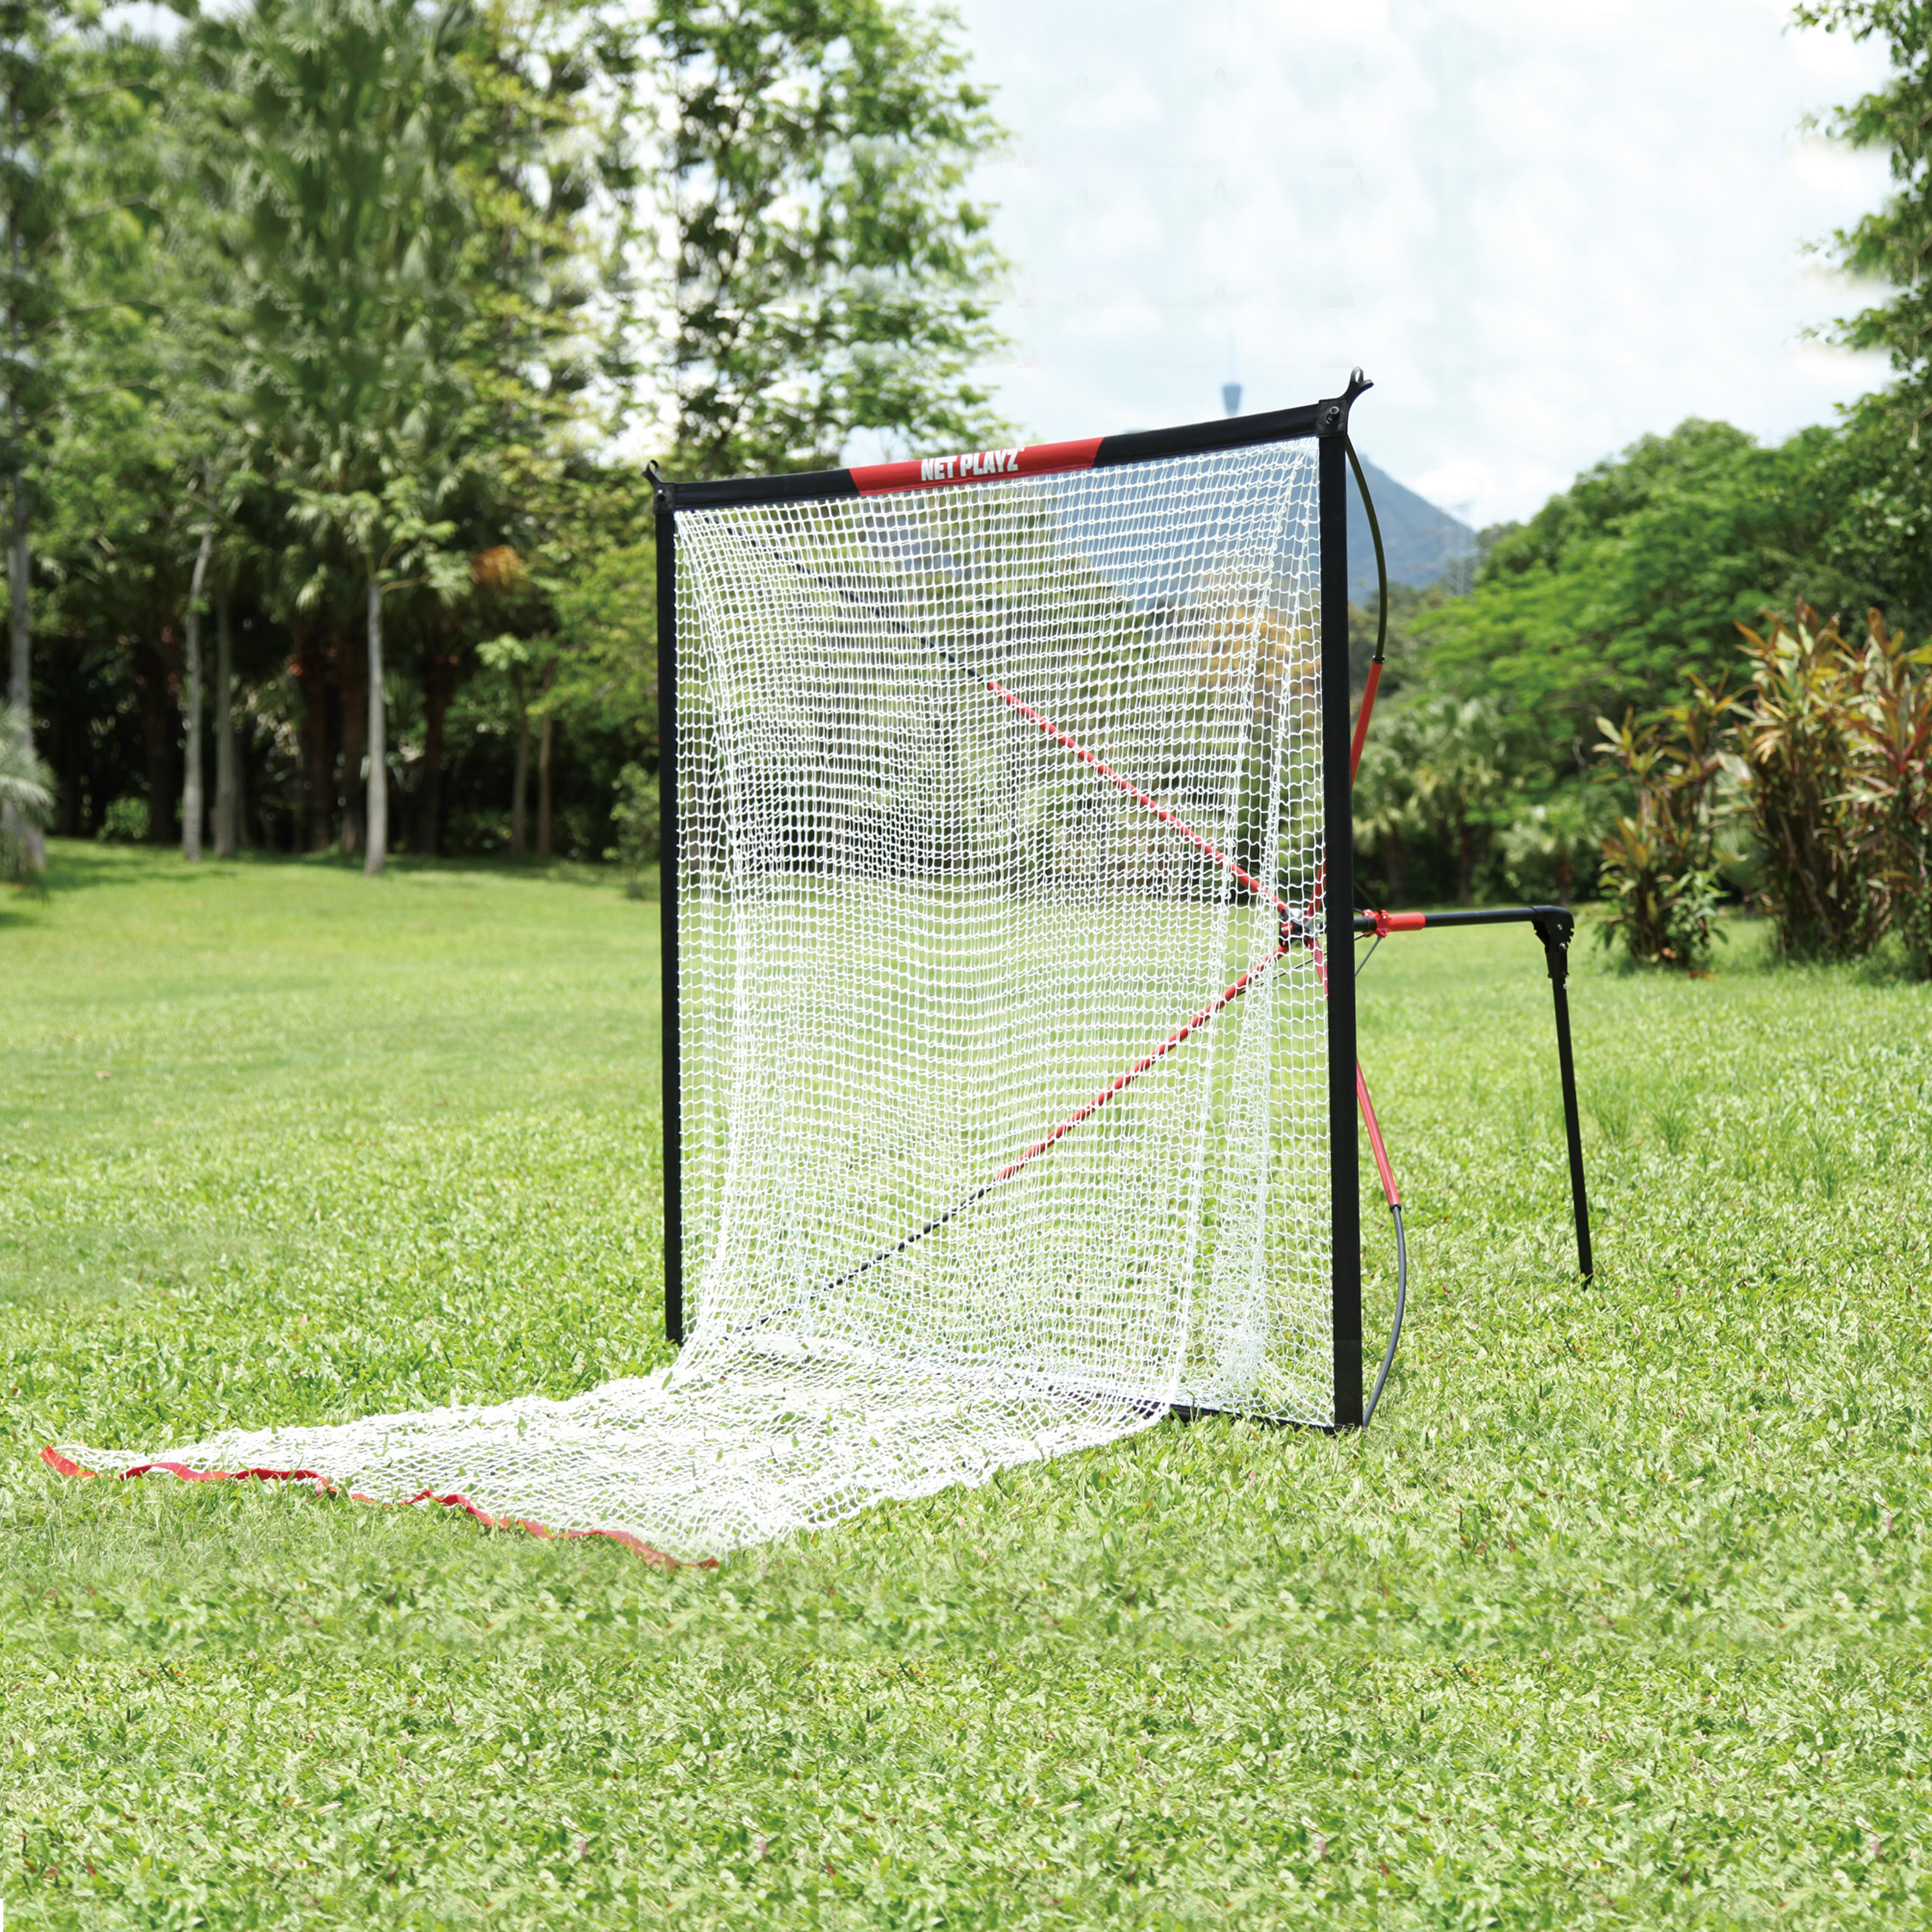 Net Playz 30s Quick Set Up Baseball and Softball Hitting Net